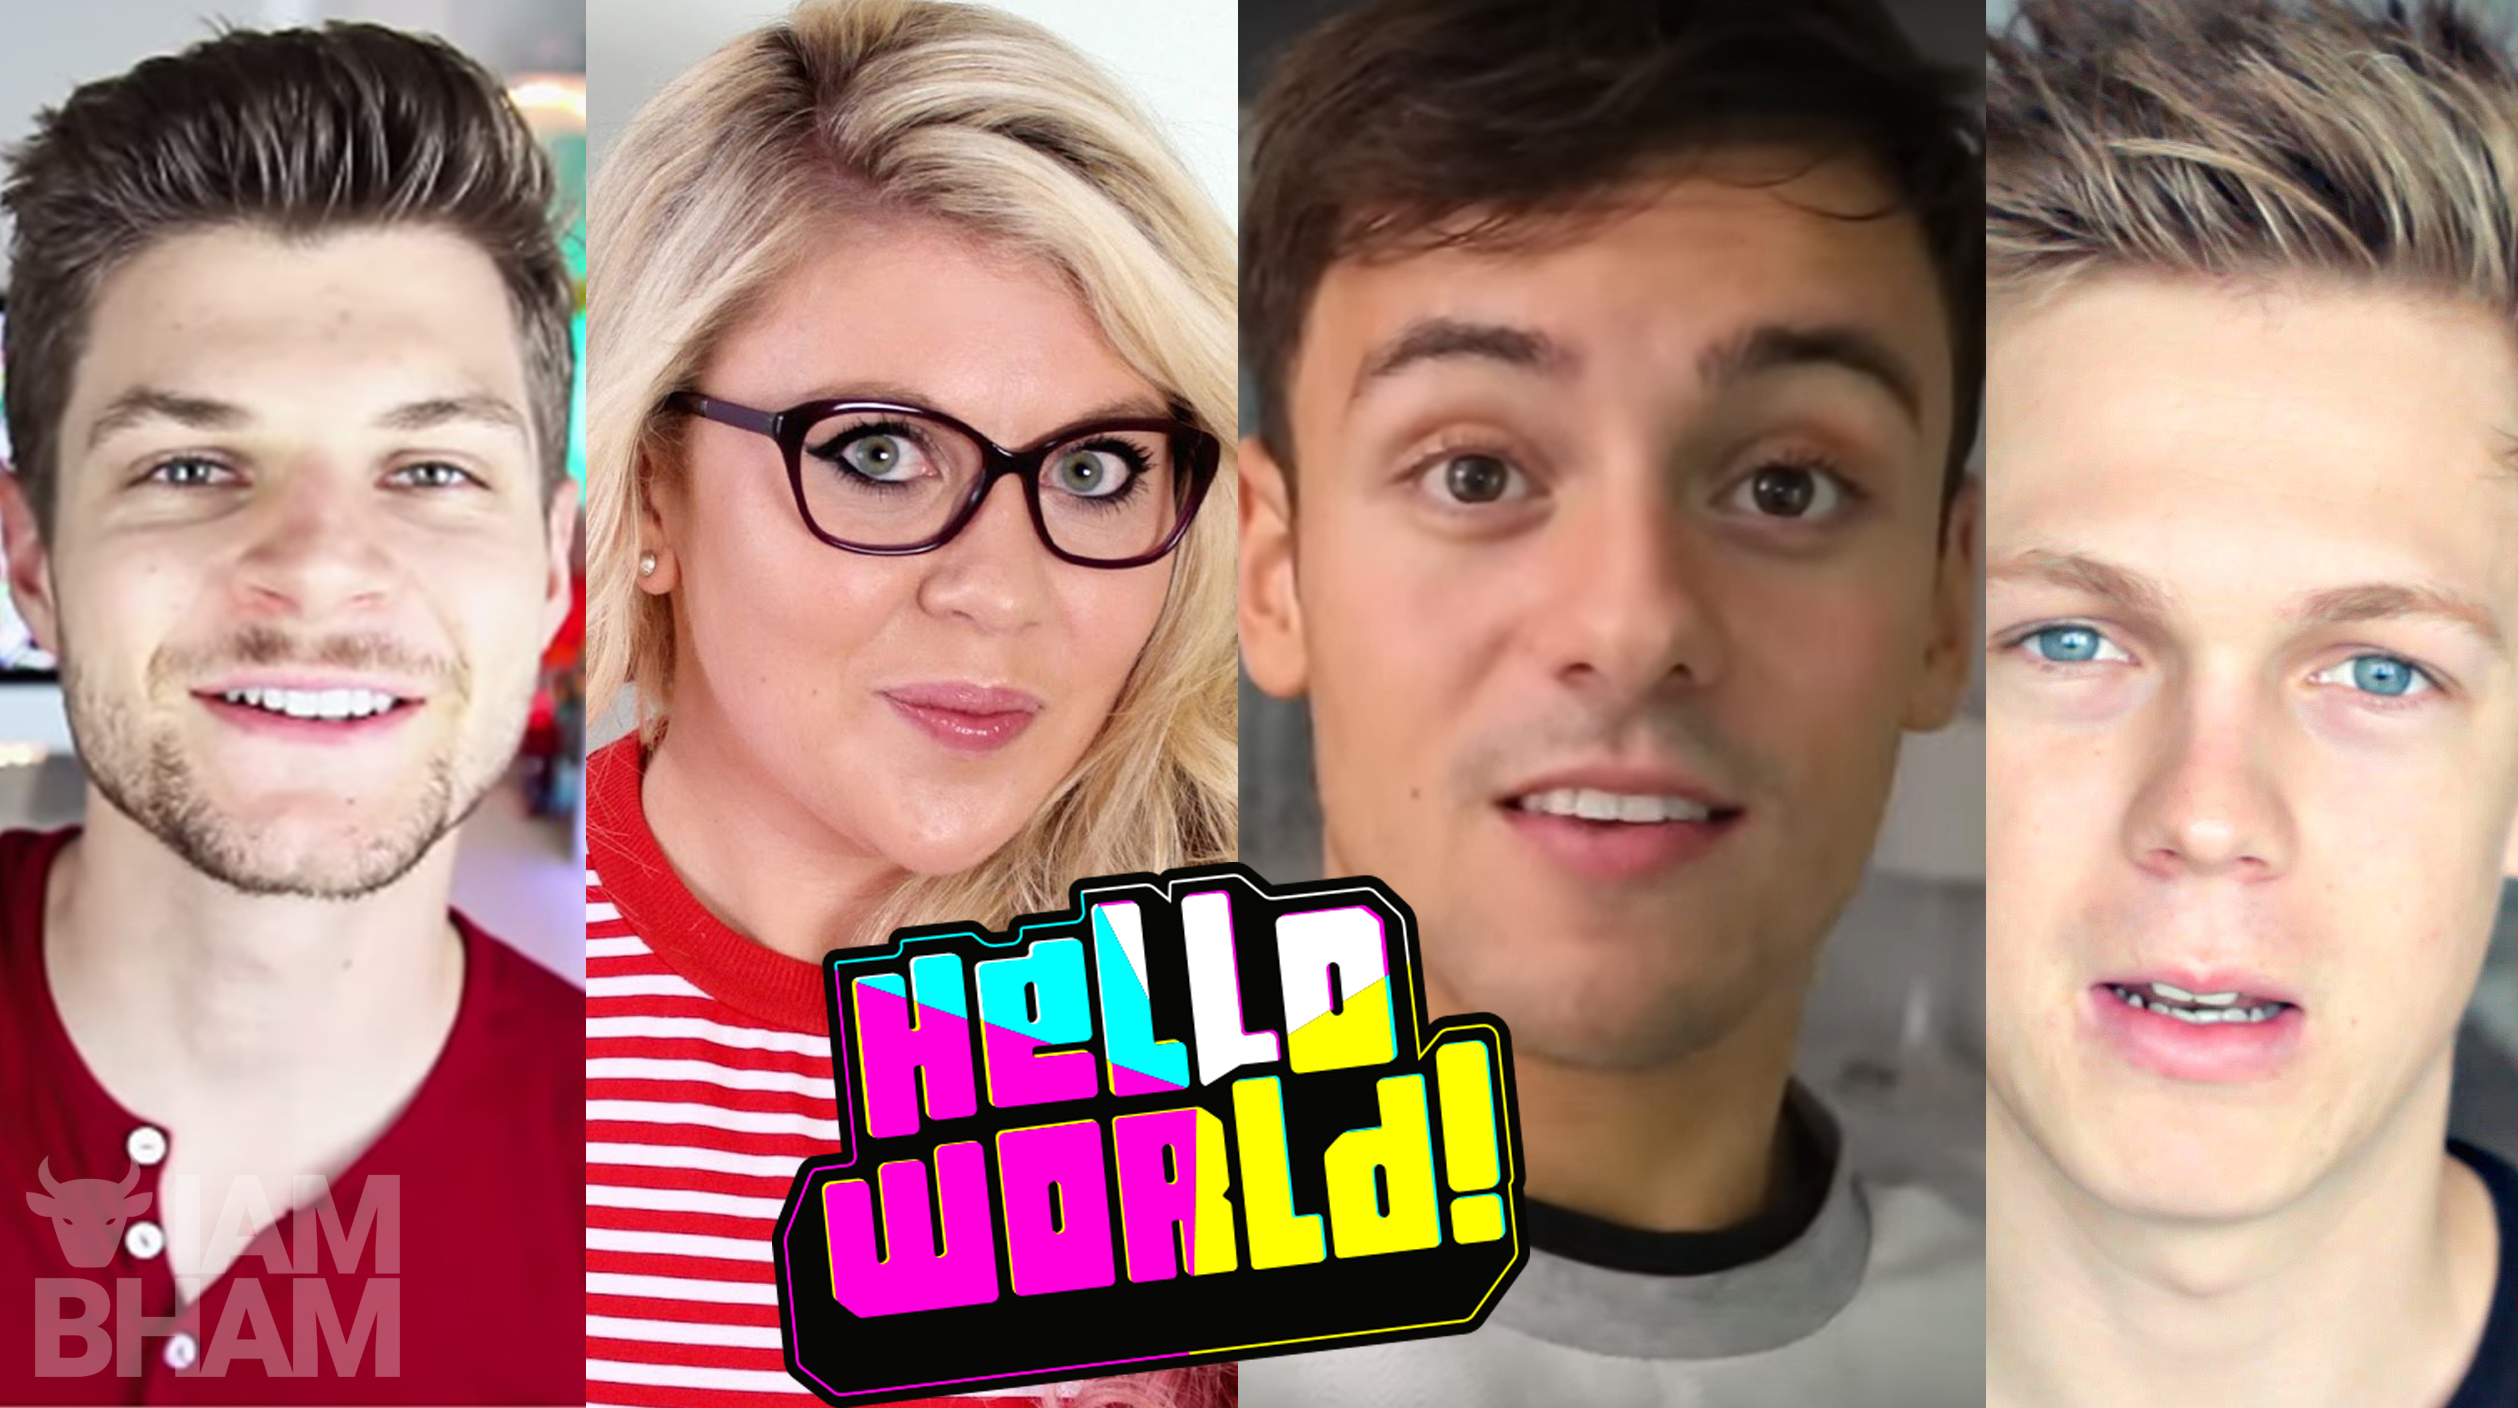 HelloWorld brings together the biggest digital stars on the planet in a 4-hour immersive live event, including (L-R) Jim Chapman, Louise Pentland, Tom Daley and Caspar Lee